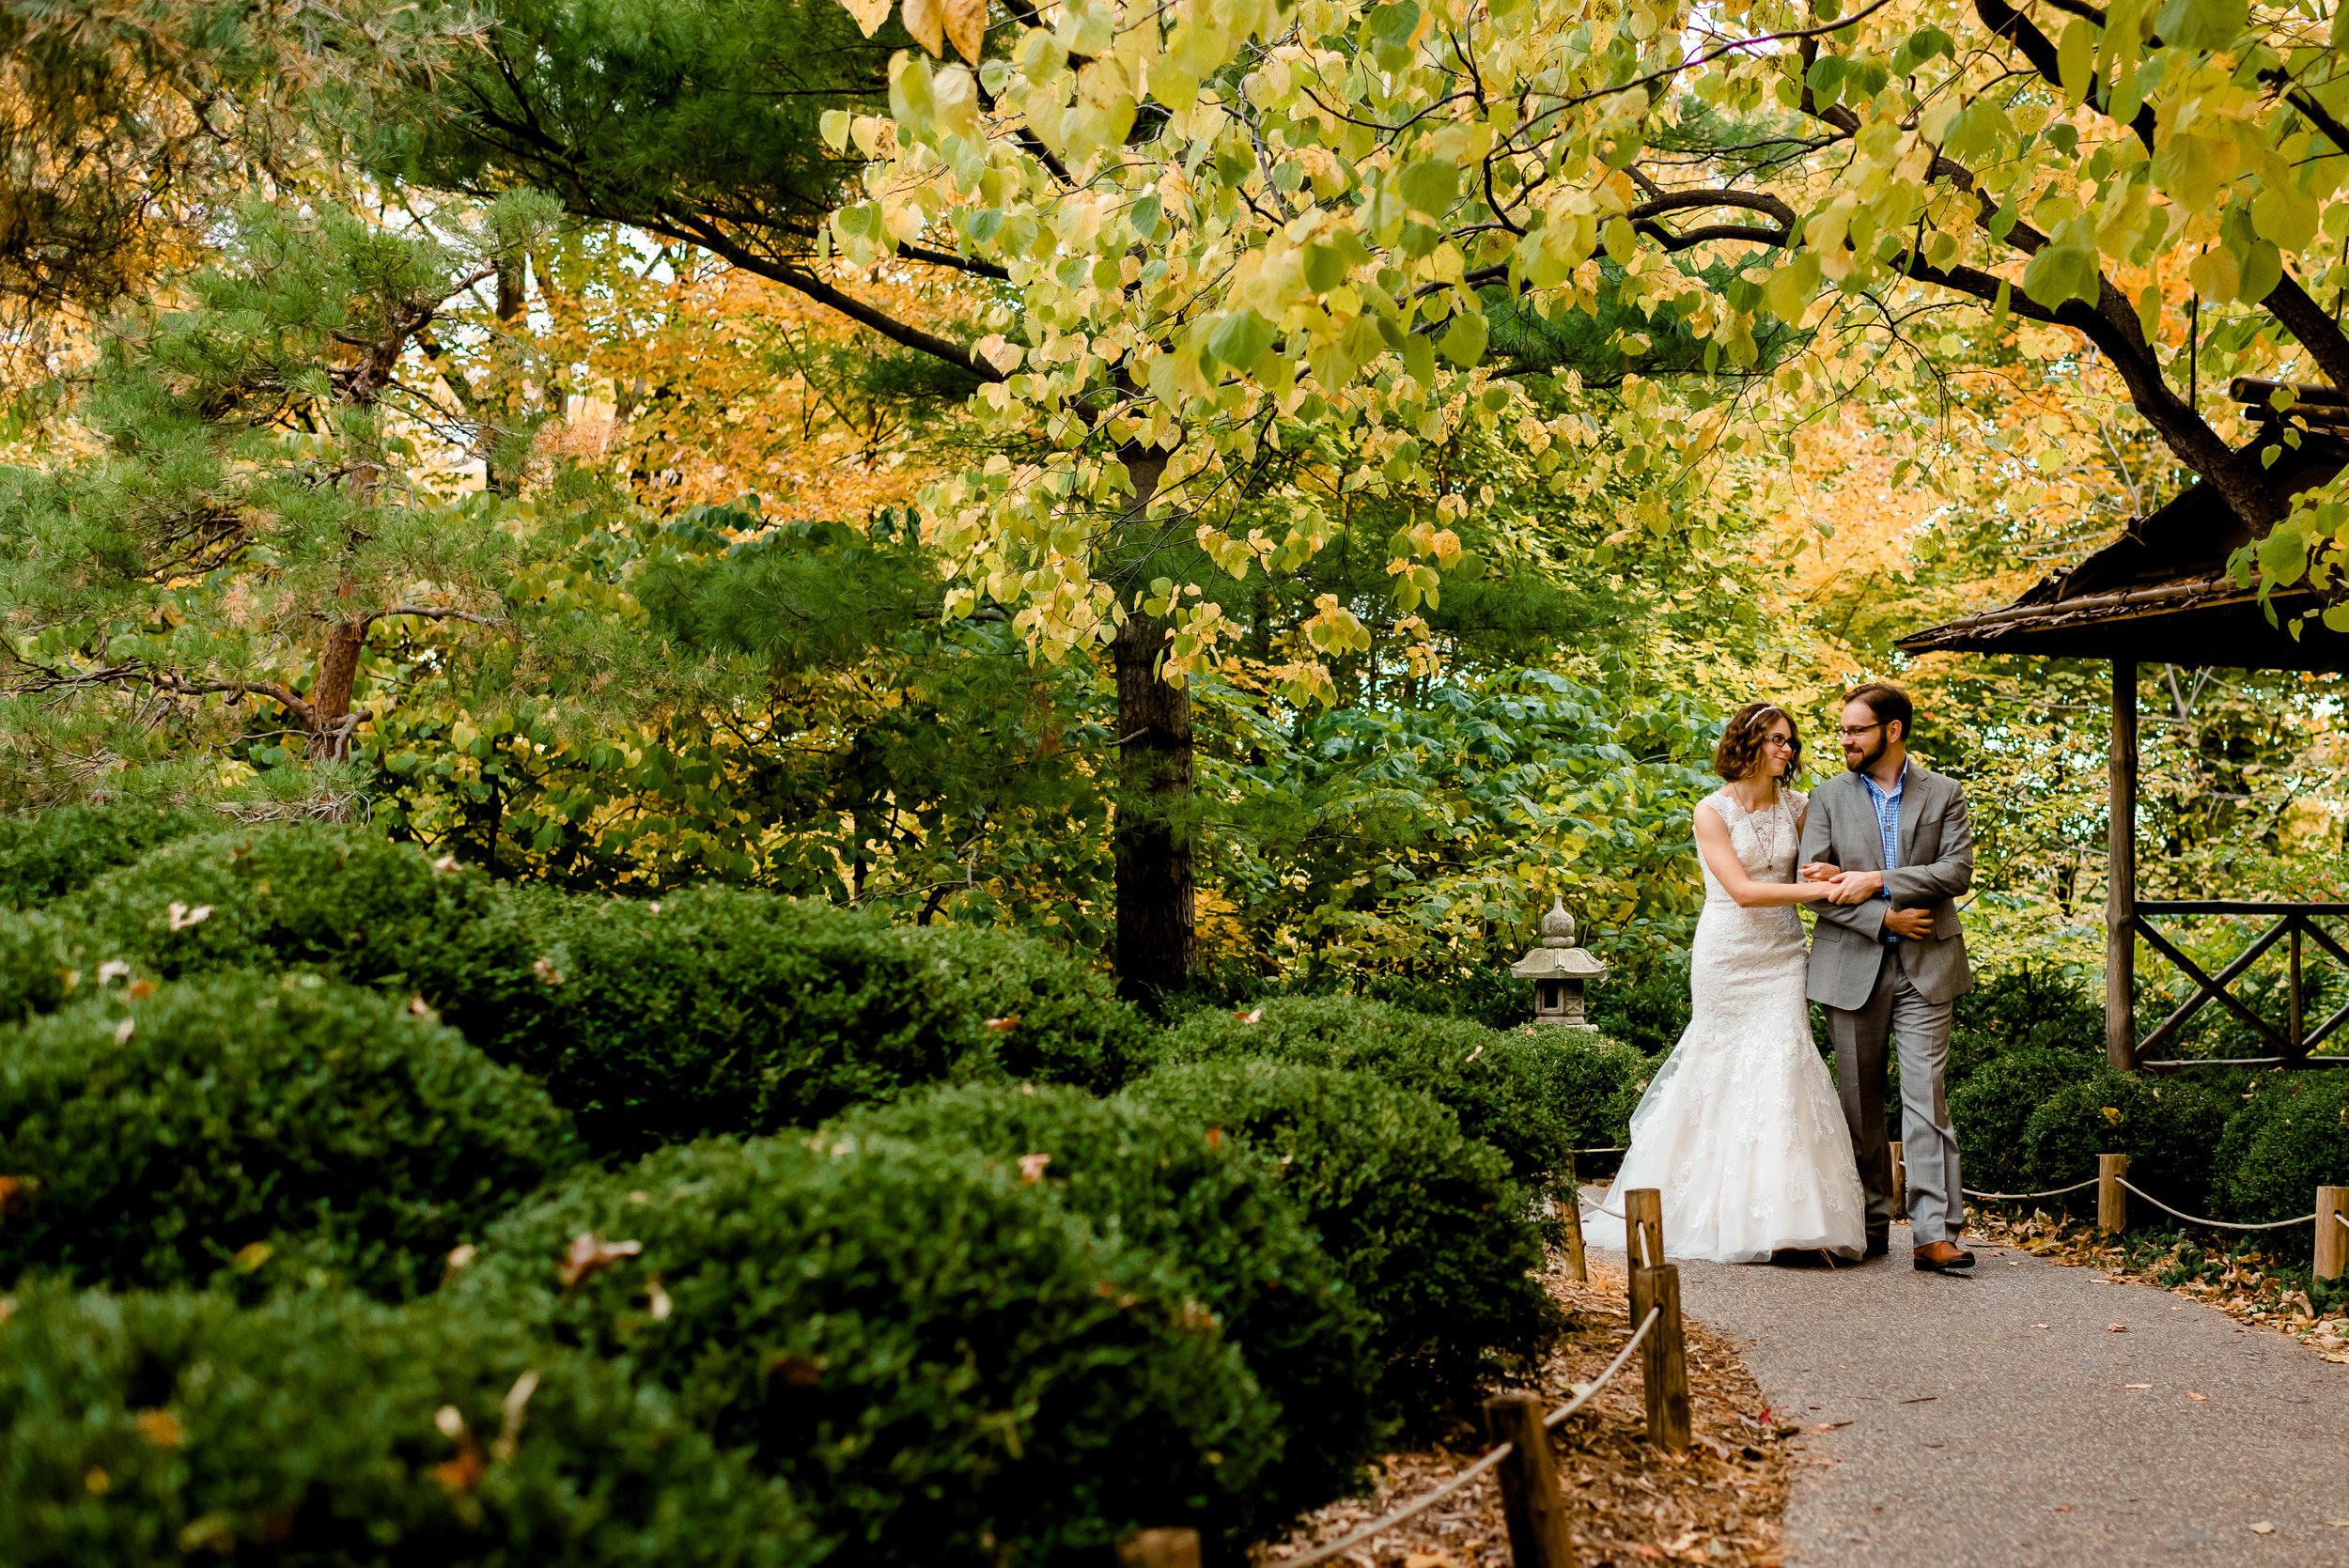 Minnesota Landscape Arboretum Wedding - Japanese Gardens Fall Autumn Portraits - Chaska, MN Wedding Photographer